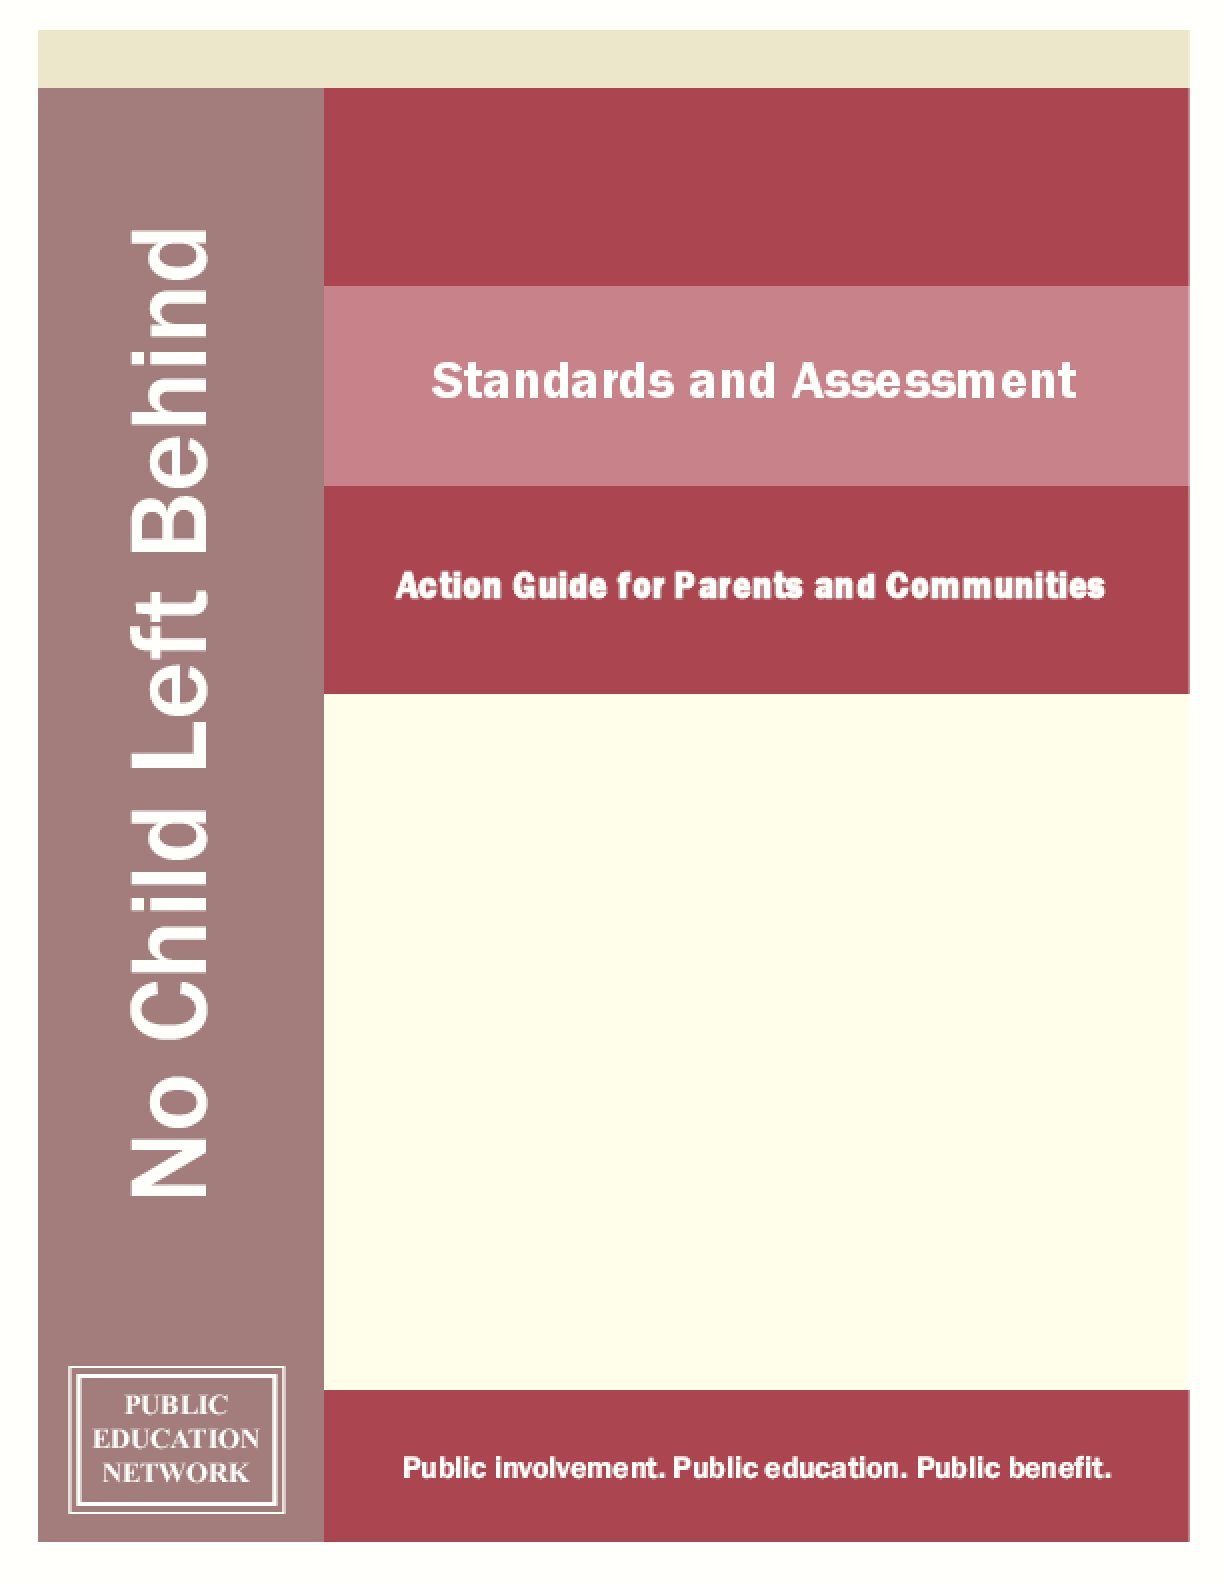 Standards and Assessment: Action Guide for Parents and Communities